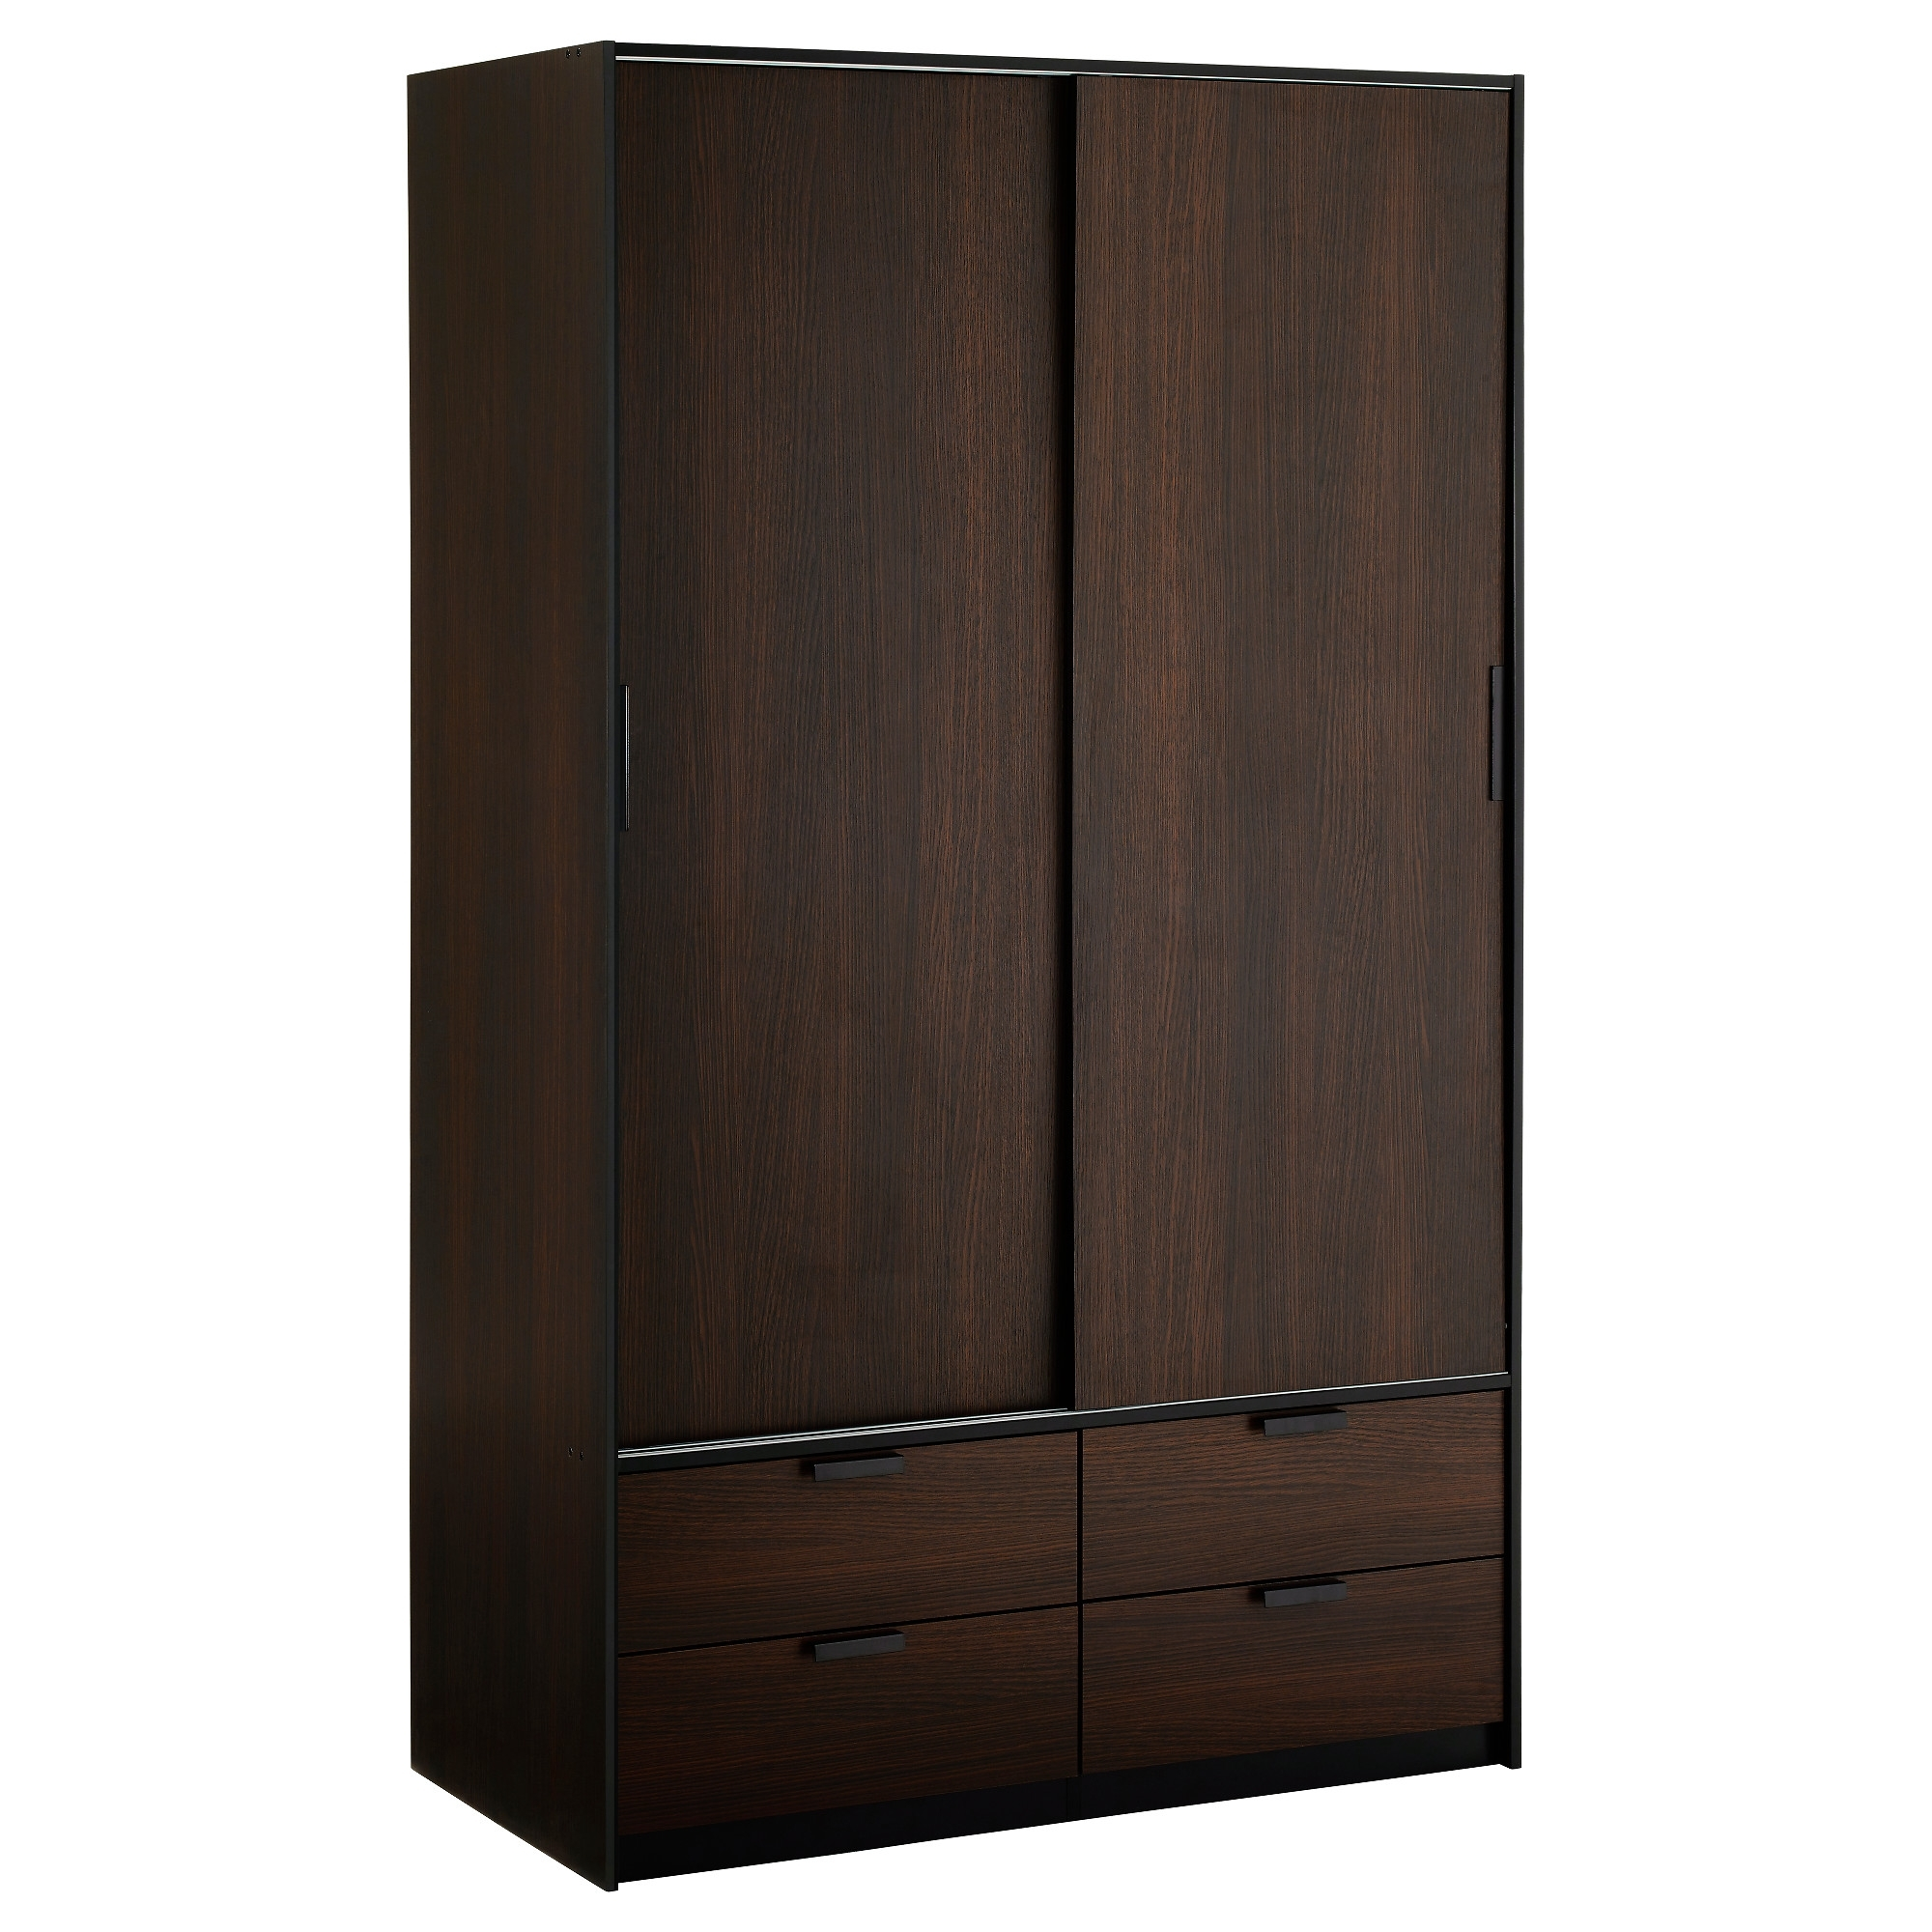 Well Known Brown Wardrobes Intended For Trysil Wardrobe W Sliding Doors/4 Drawers – Ikea (View 15 of 15)